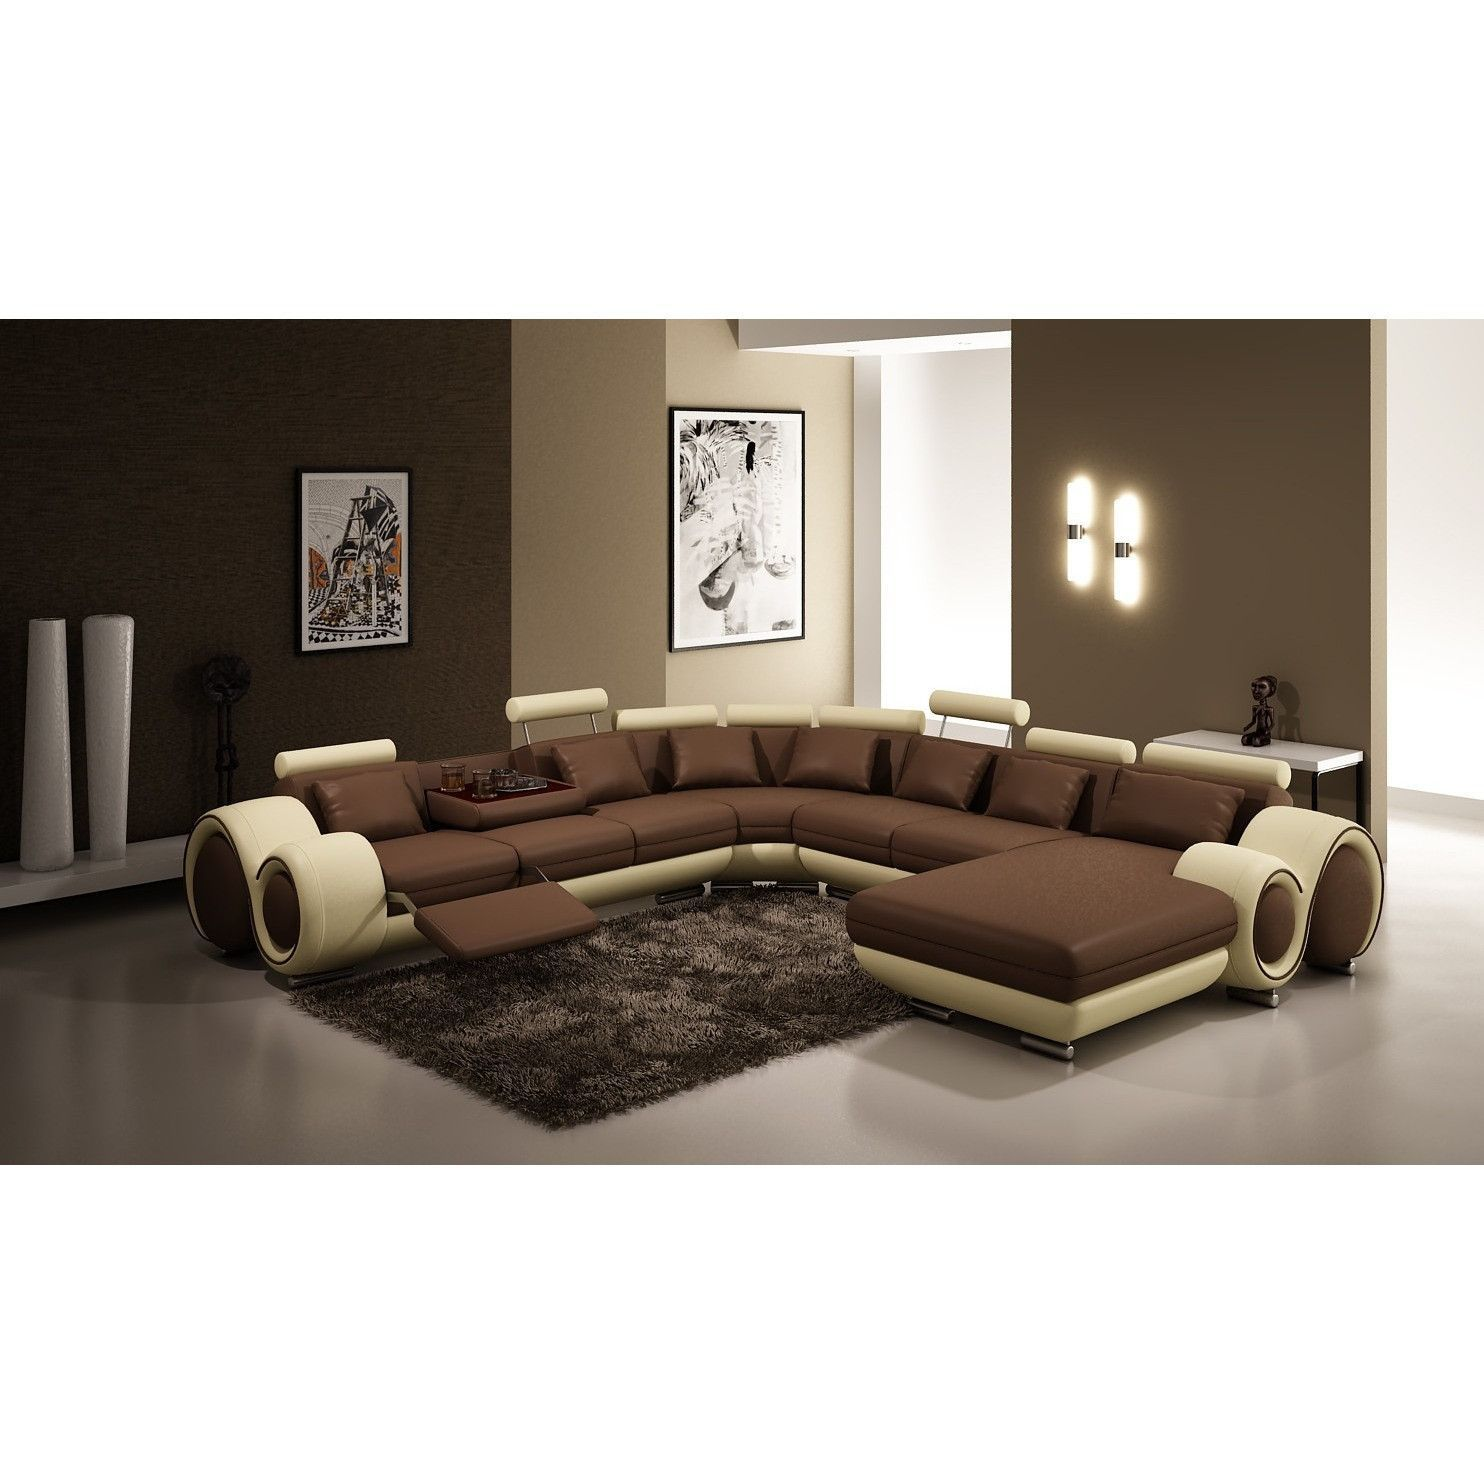 Casa 4084 Contemporary Brown and Beige Bonded Leather Sectional Sofa